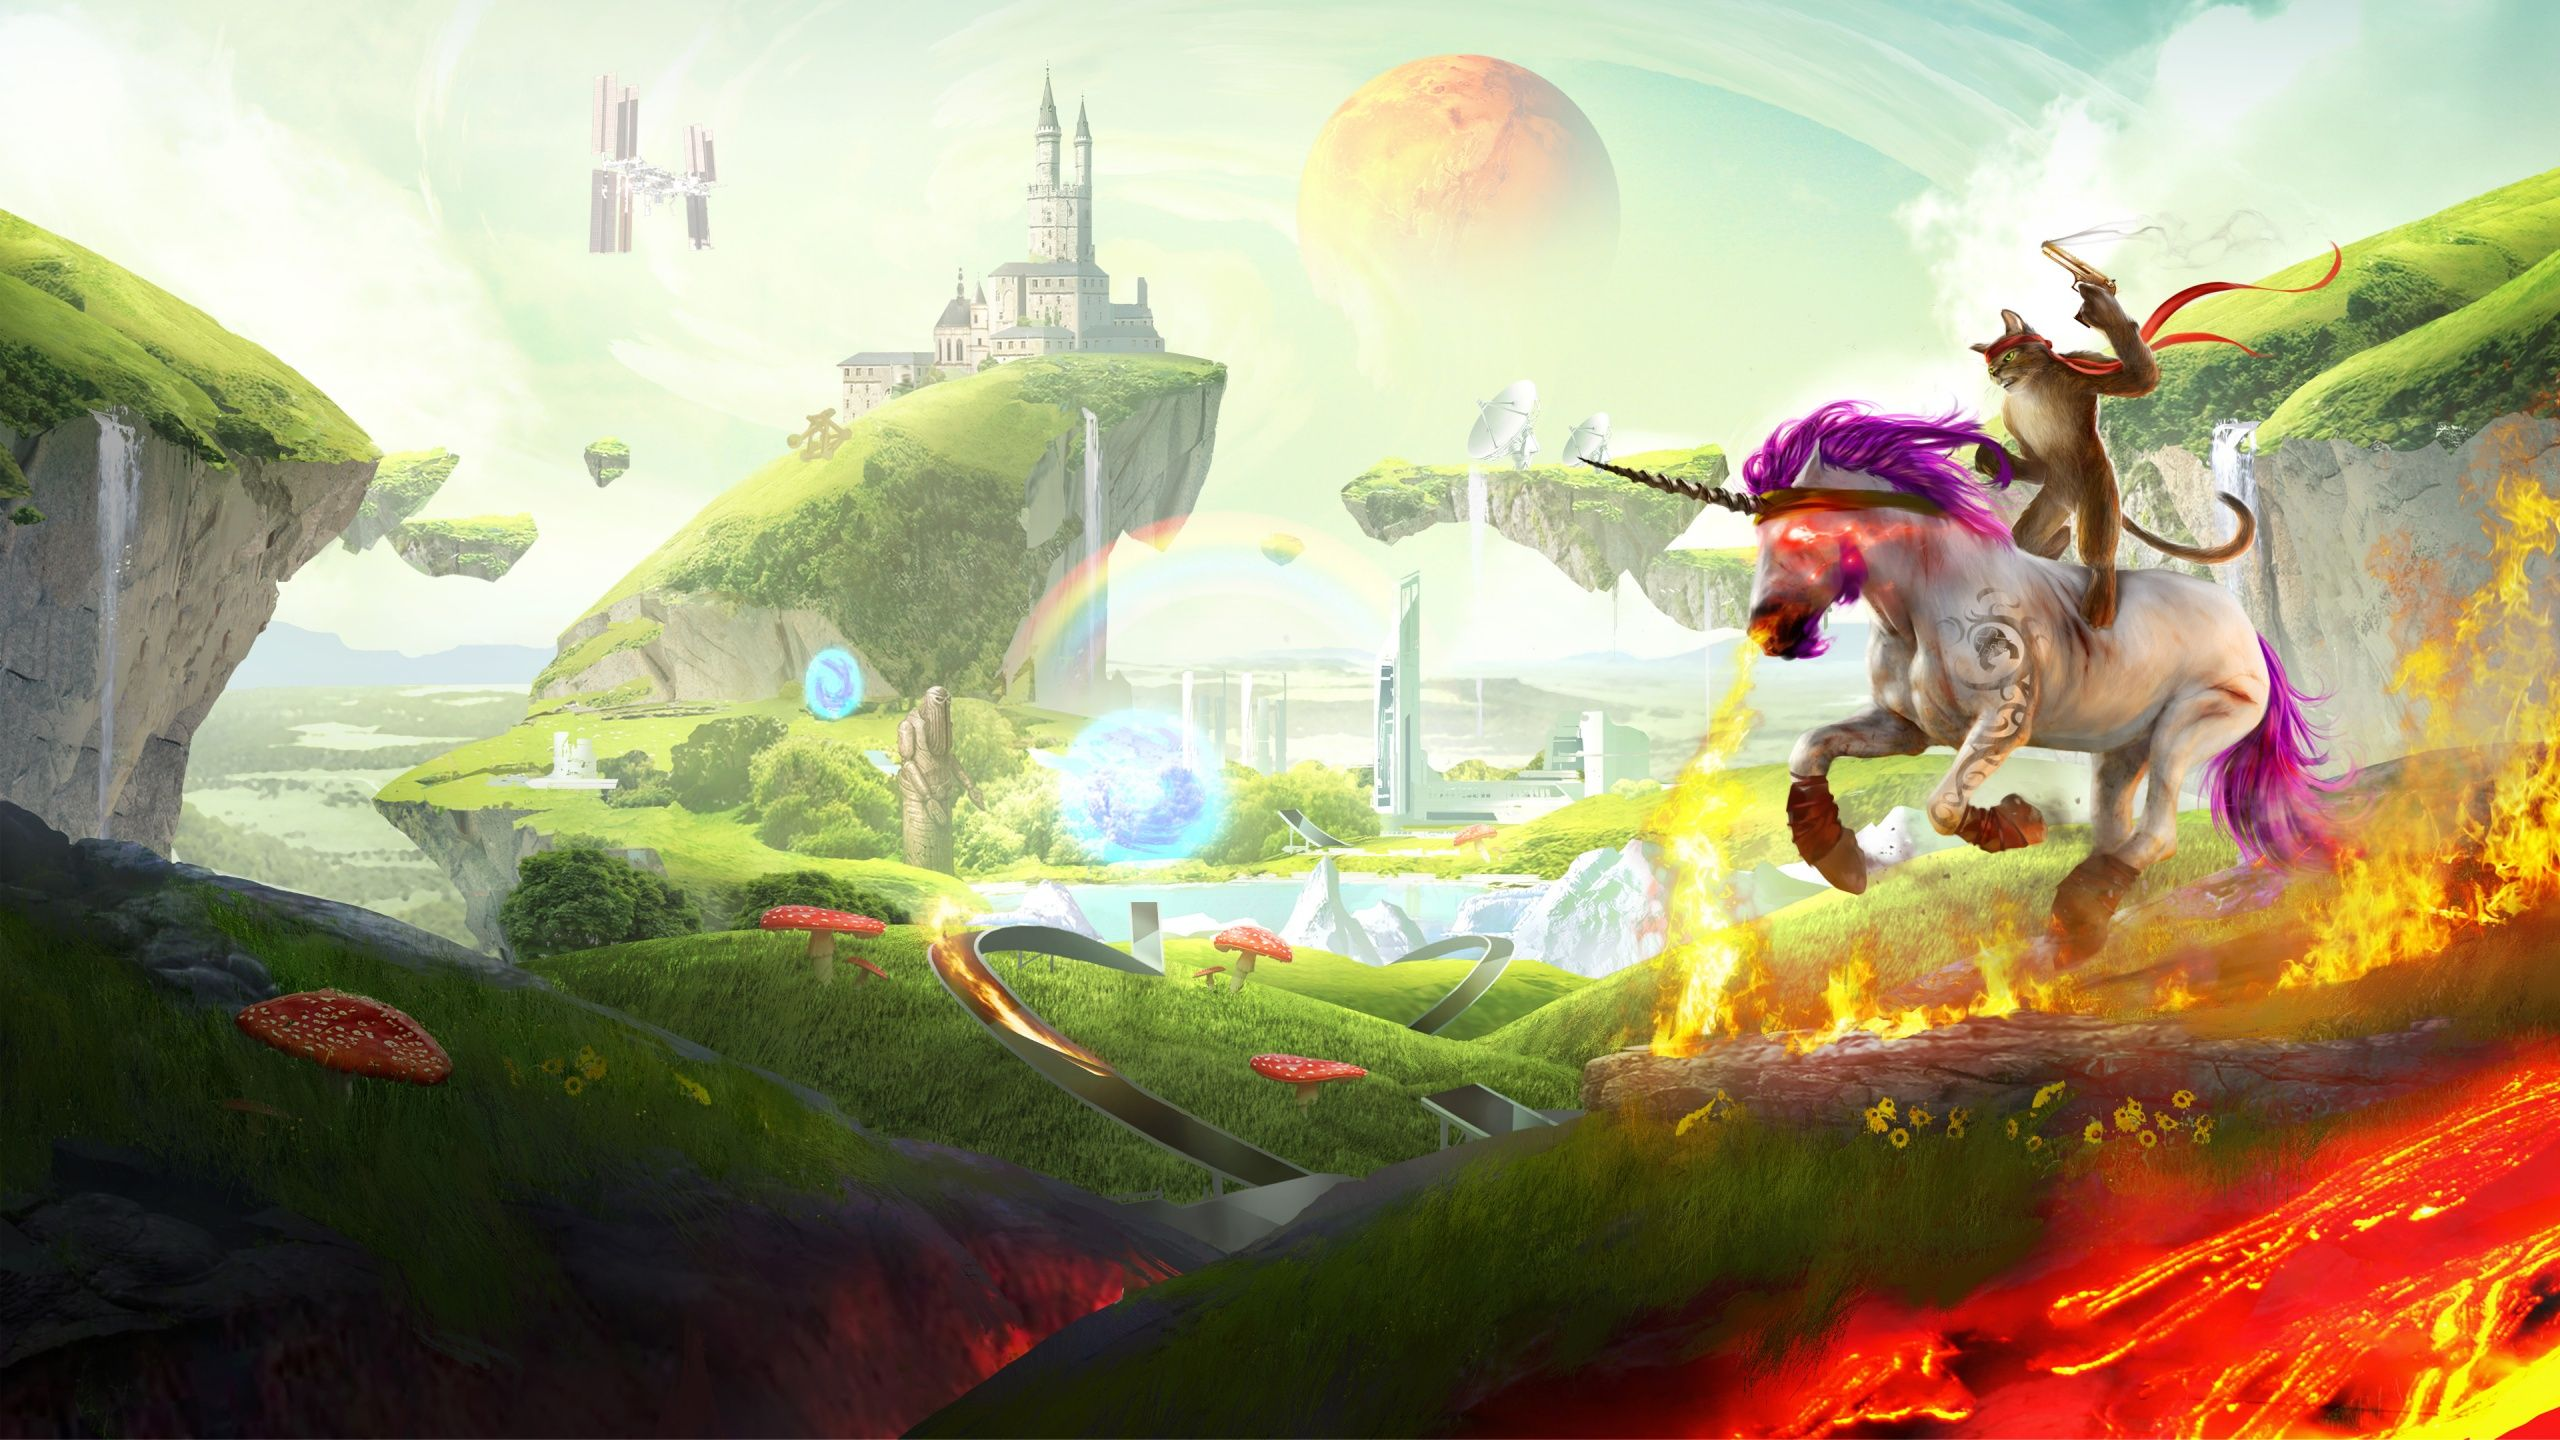 2560x1440 Trials Fusion Unicorn Cat Wallpapers in jpg format for free ...